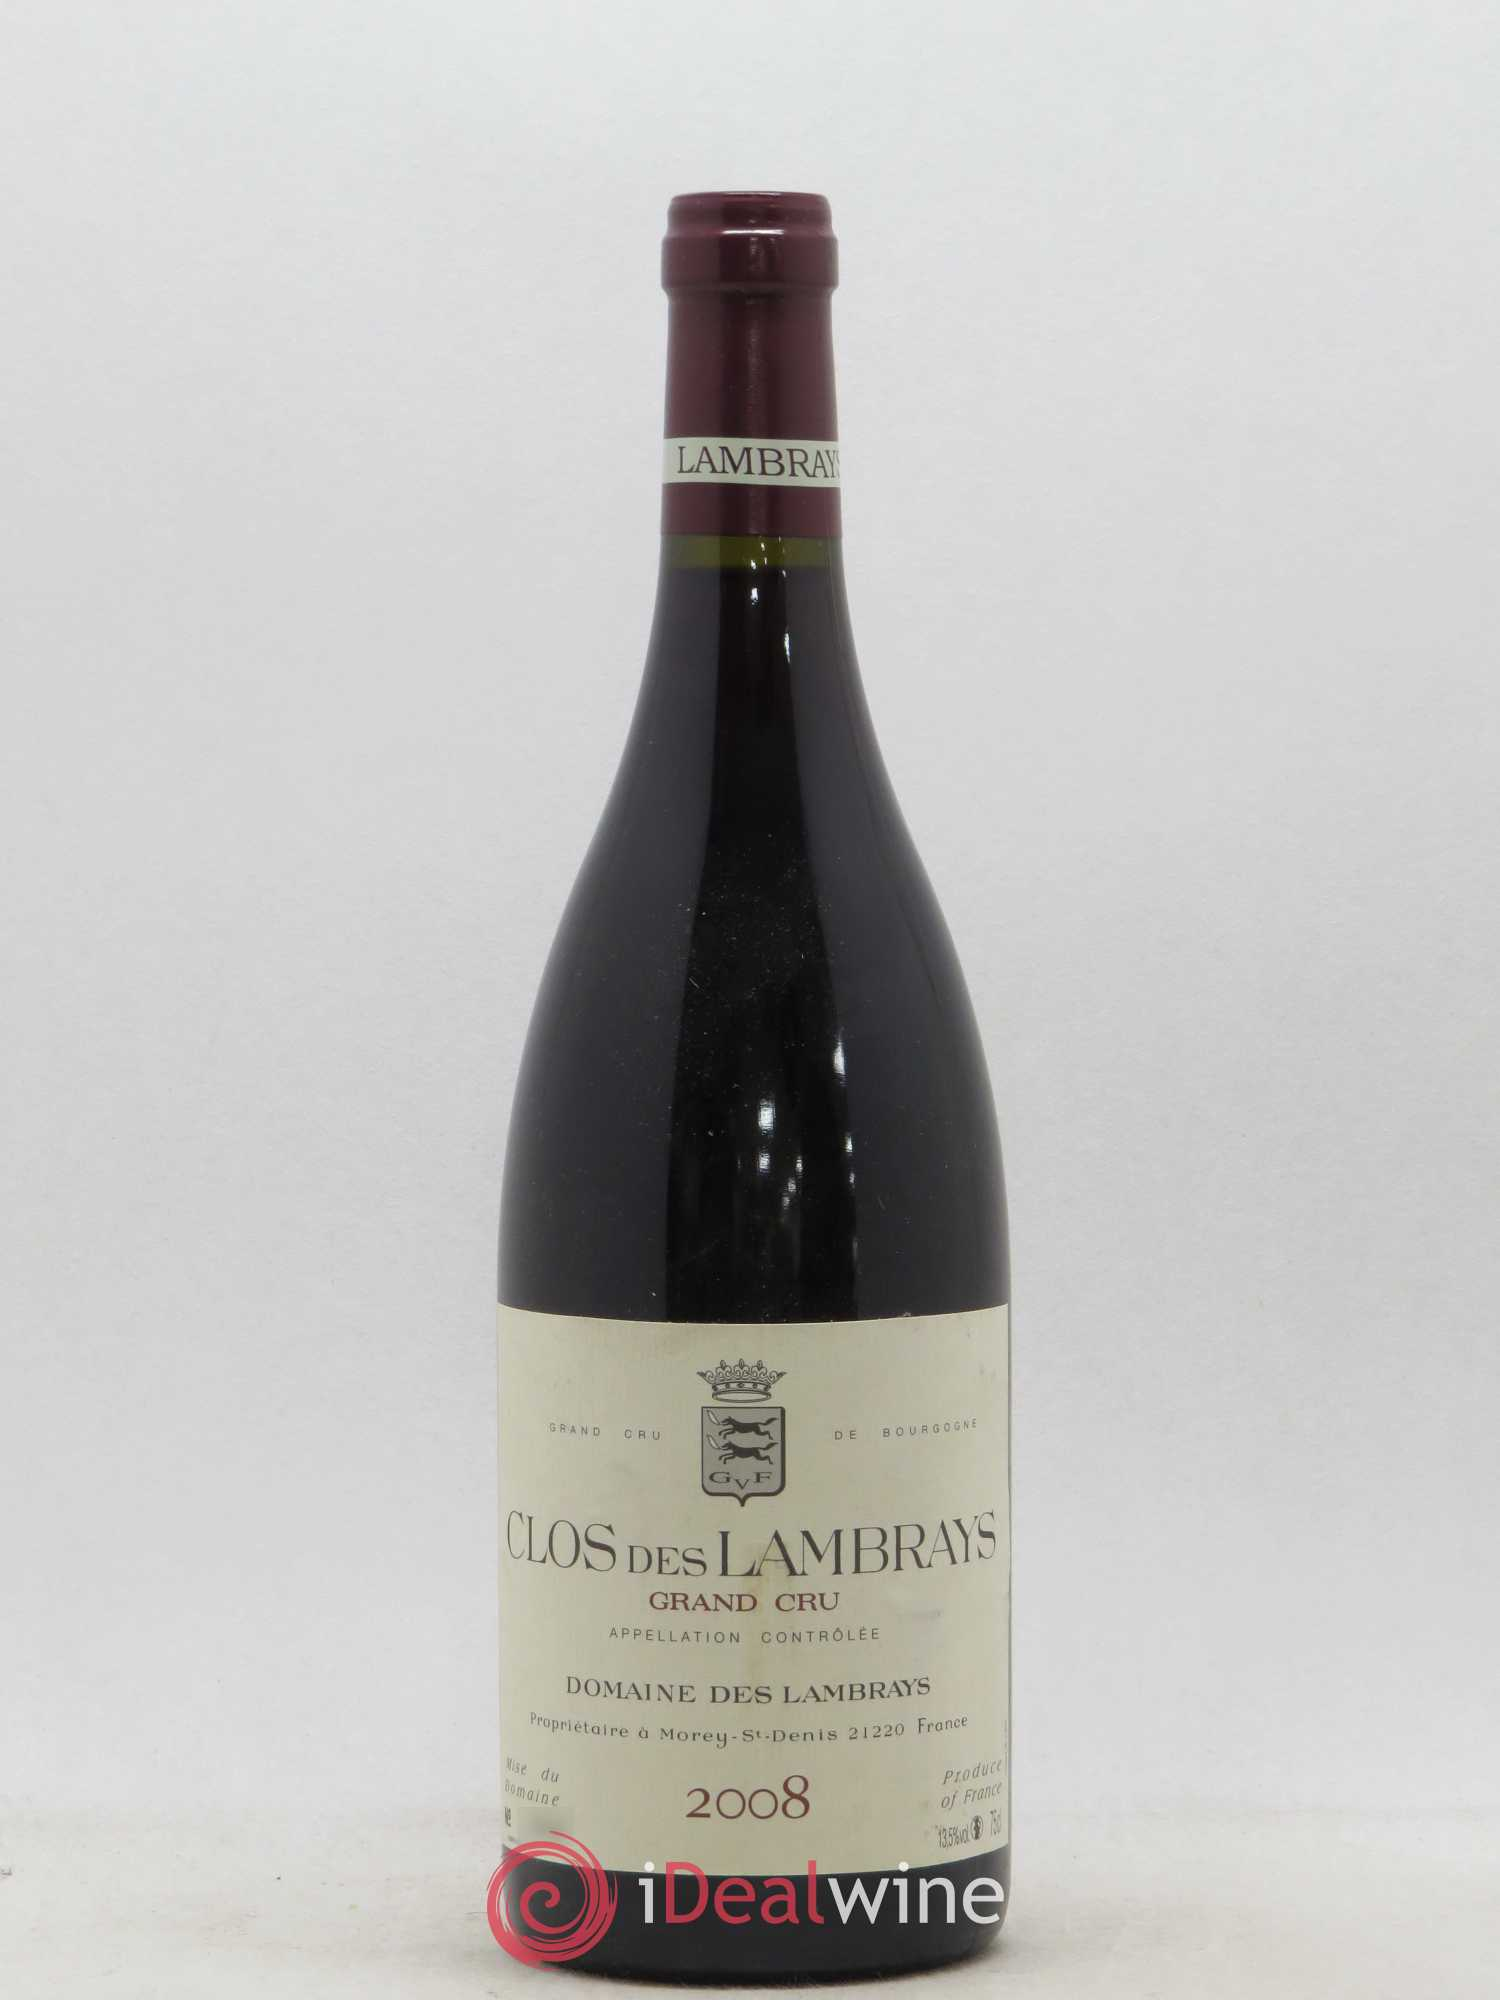 Clos des Lambrays Grand Cru Domaine des Lambrays  2008 - Lot of 1 Bottle